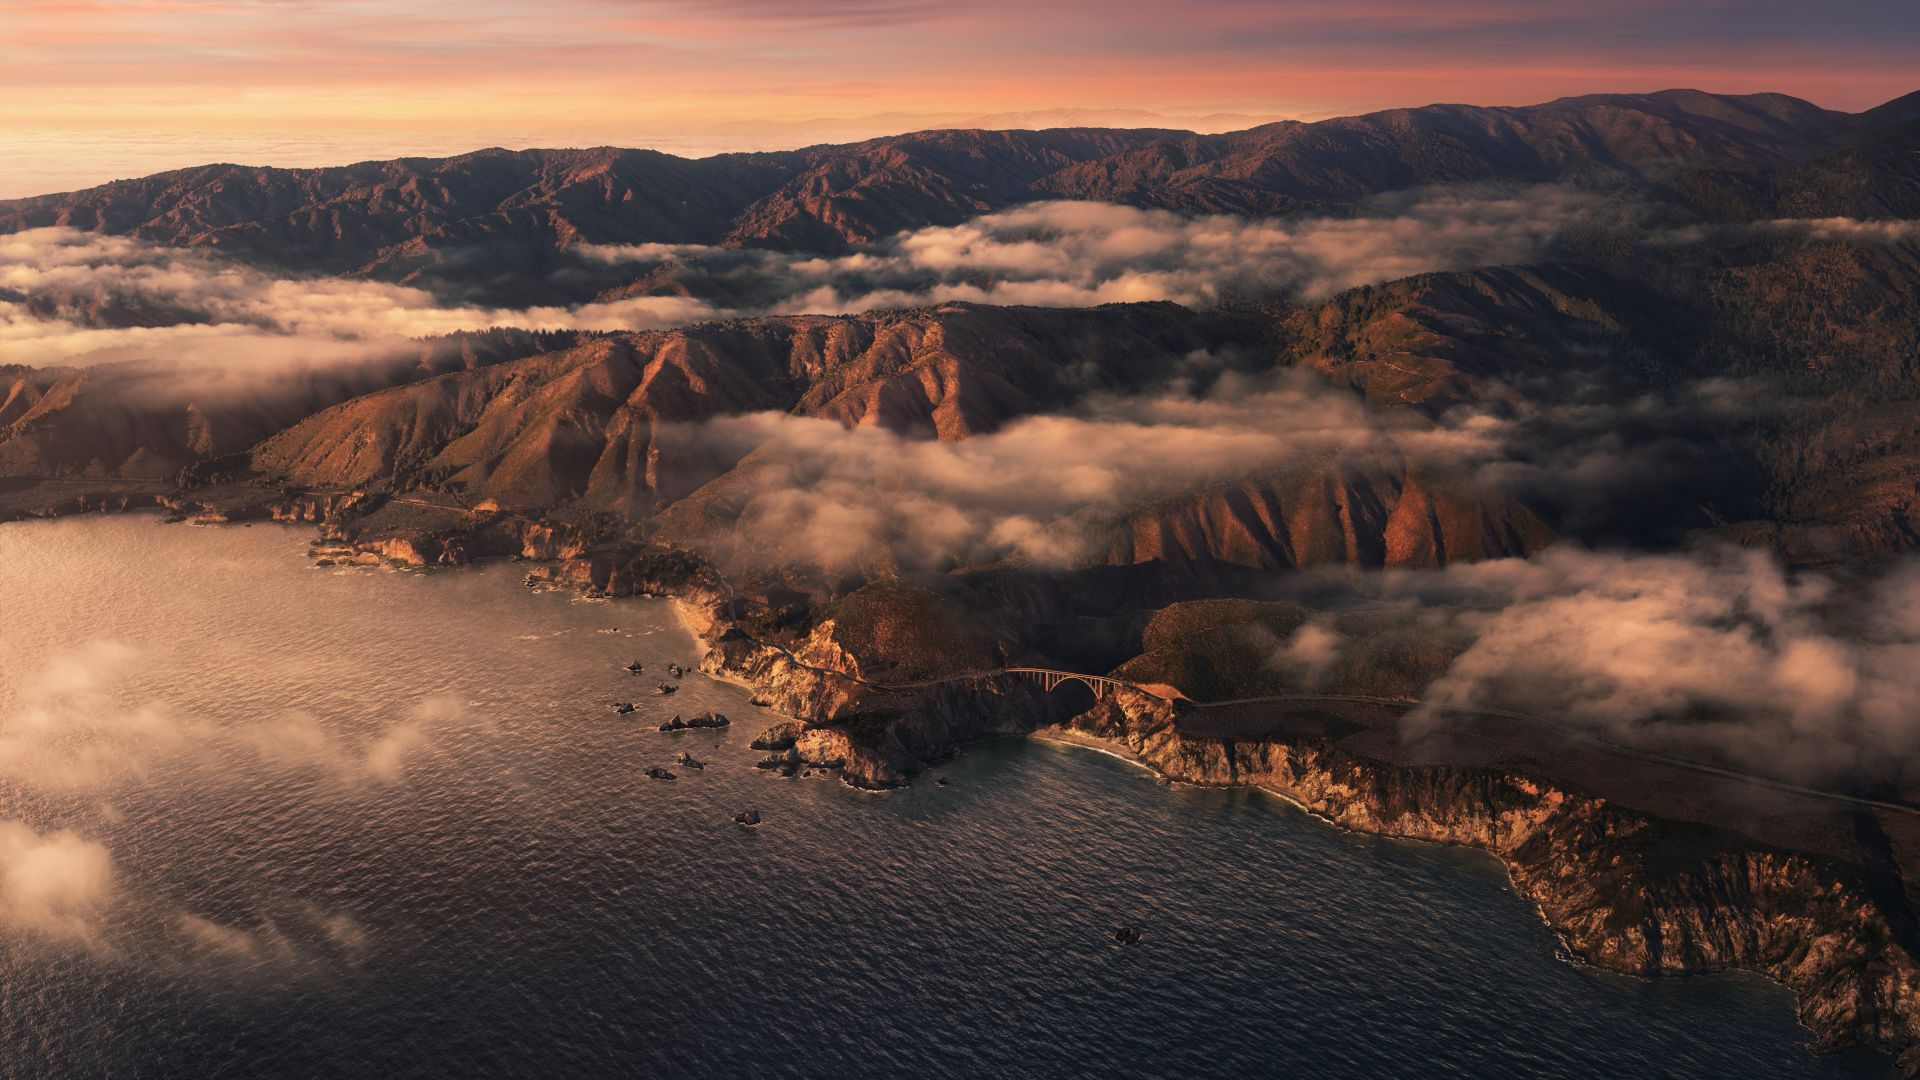 macOS Big Sur, sunset, Apple October 2020 Event, 5K (horizontal)